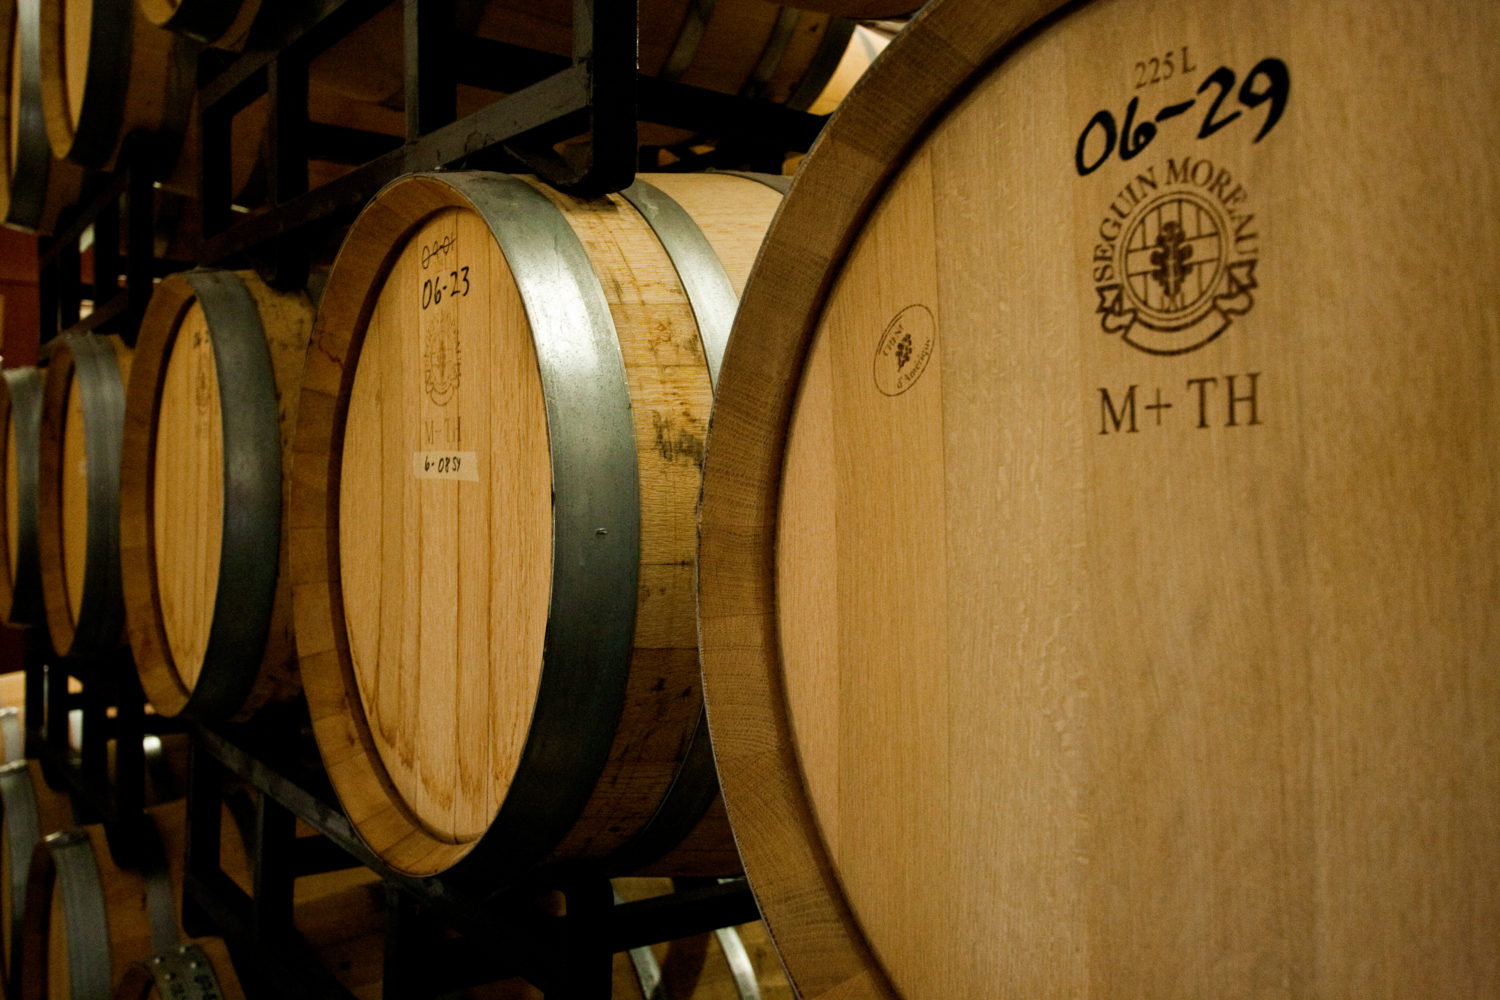 Be sure to stop at Sonoita Vineyard for a wine tasting